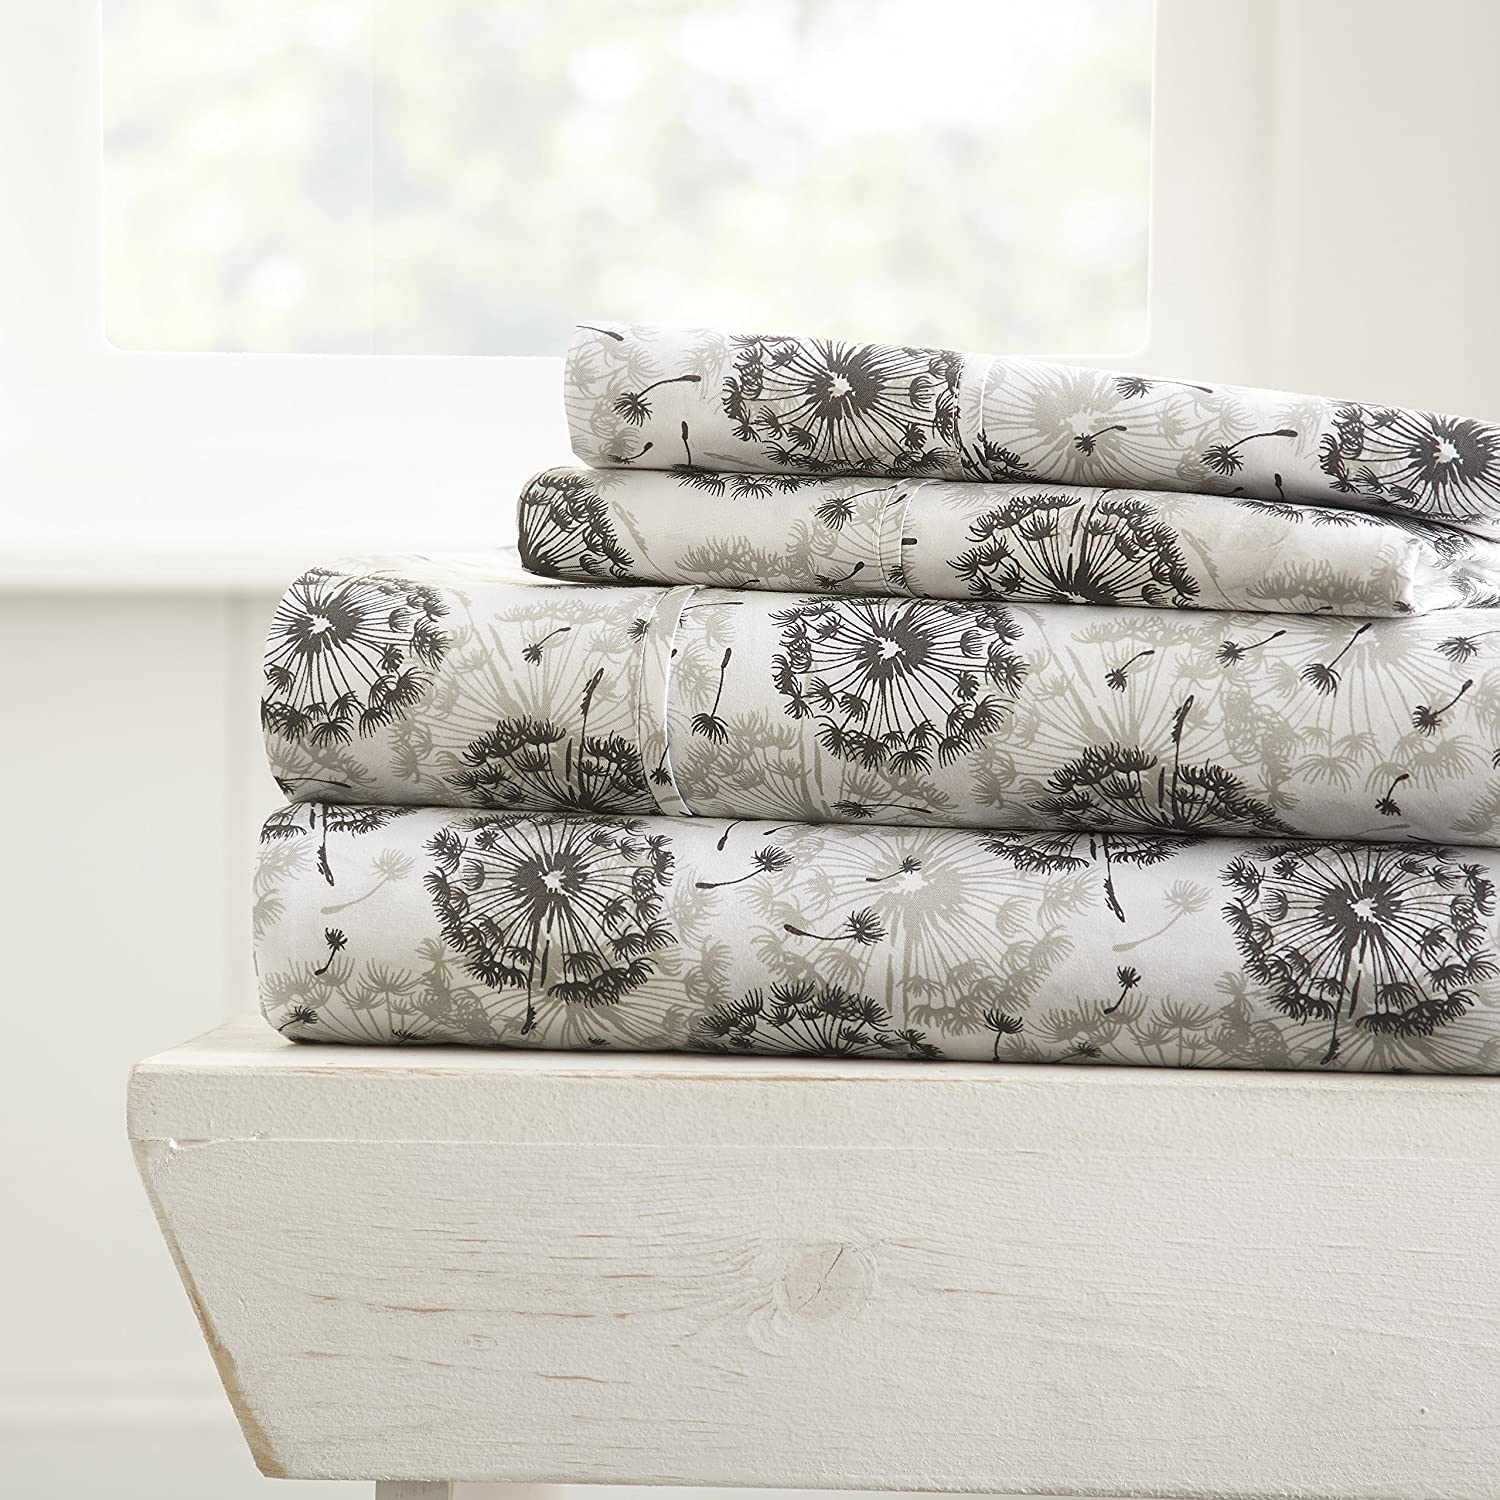 Simply Soft 4 Piece Sheet Set Make A Wish Patterned, California King, Light Gray